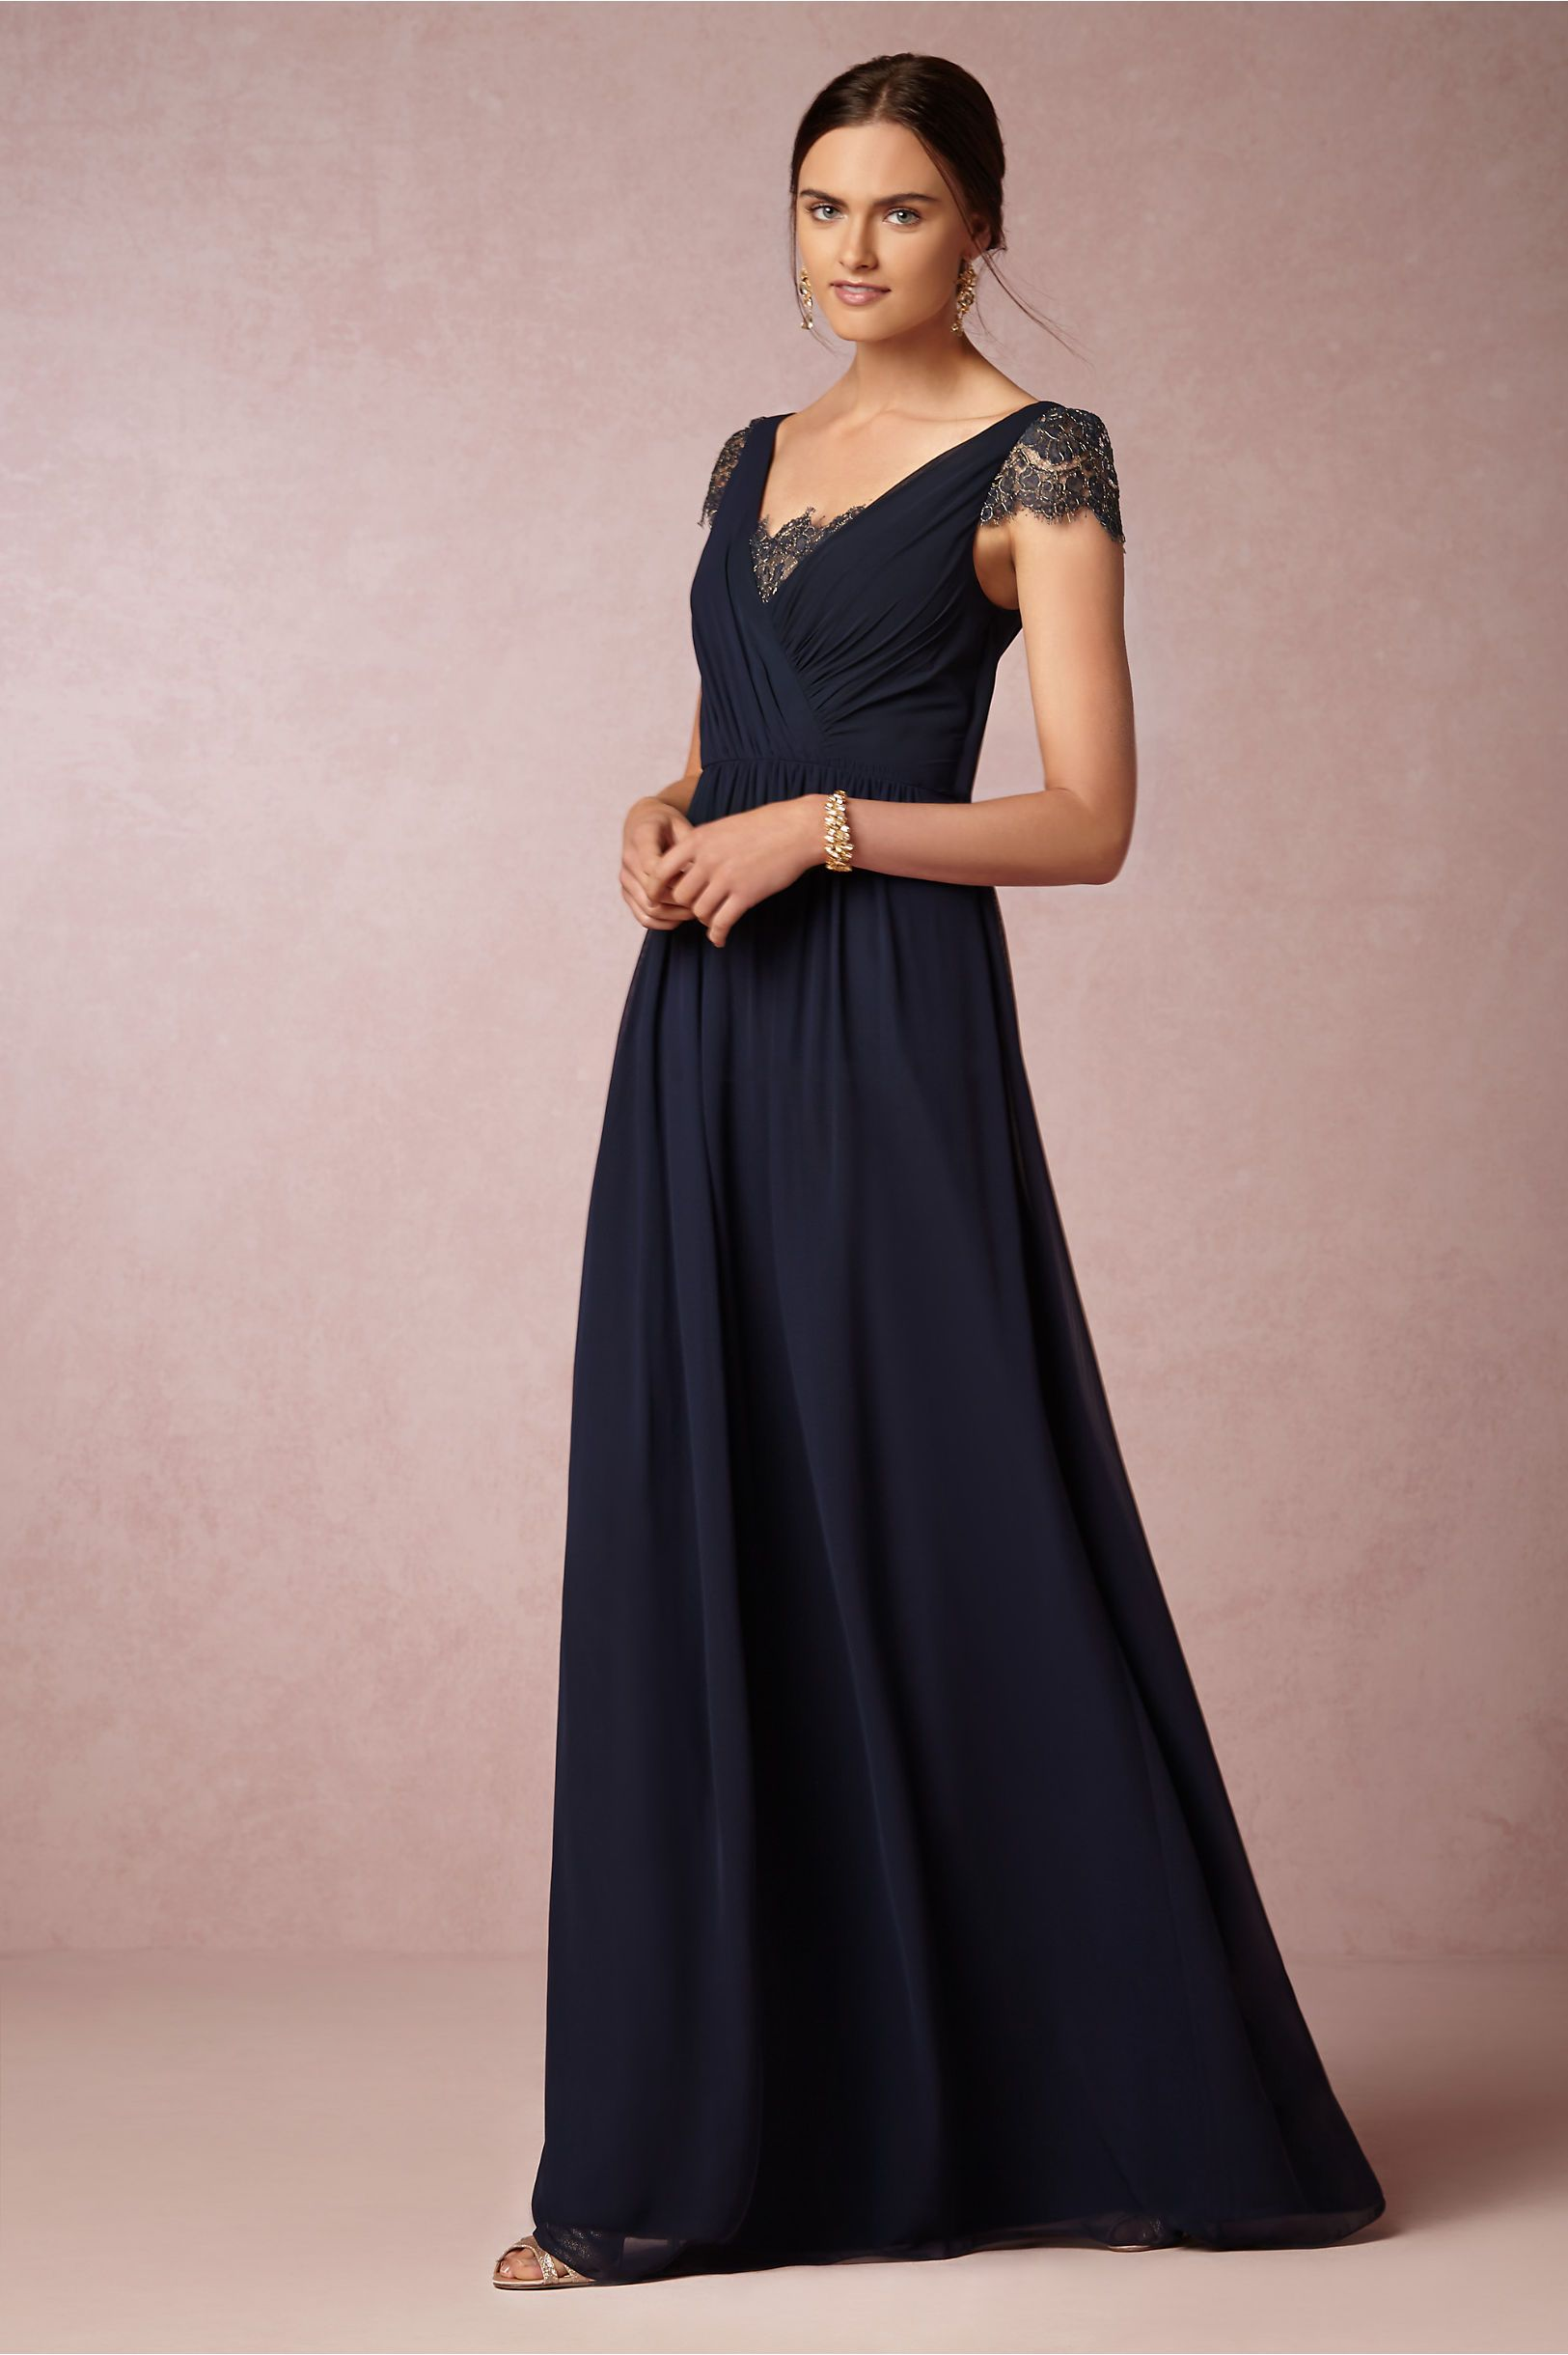 Evangeline dress in bride reception dresses at bhldn style